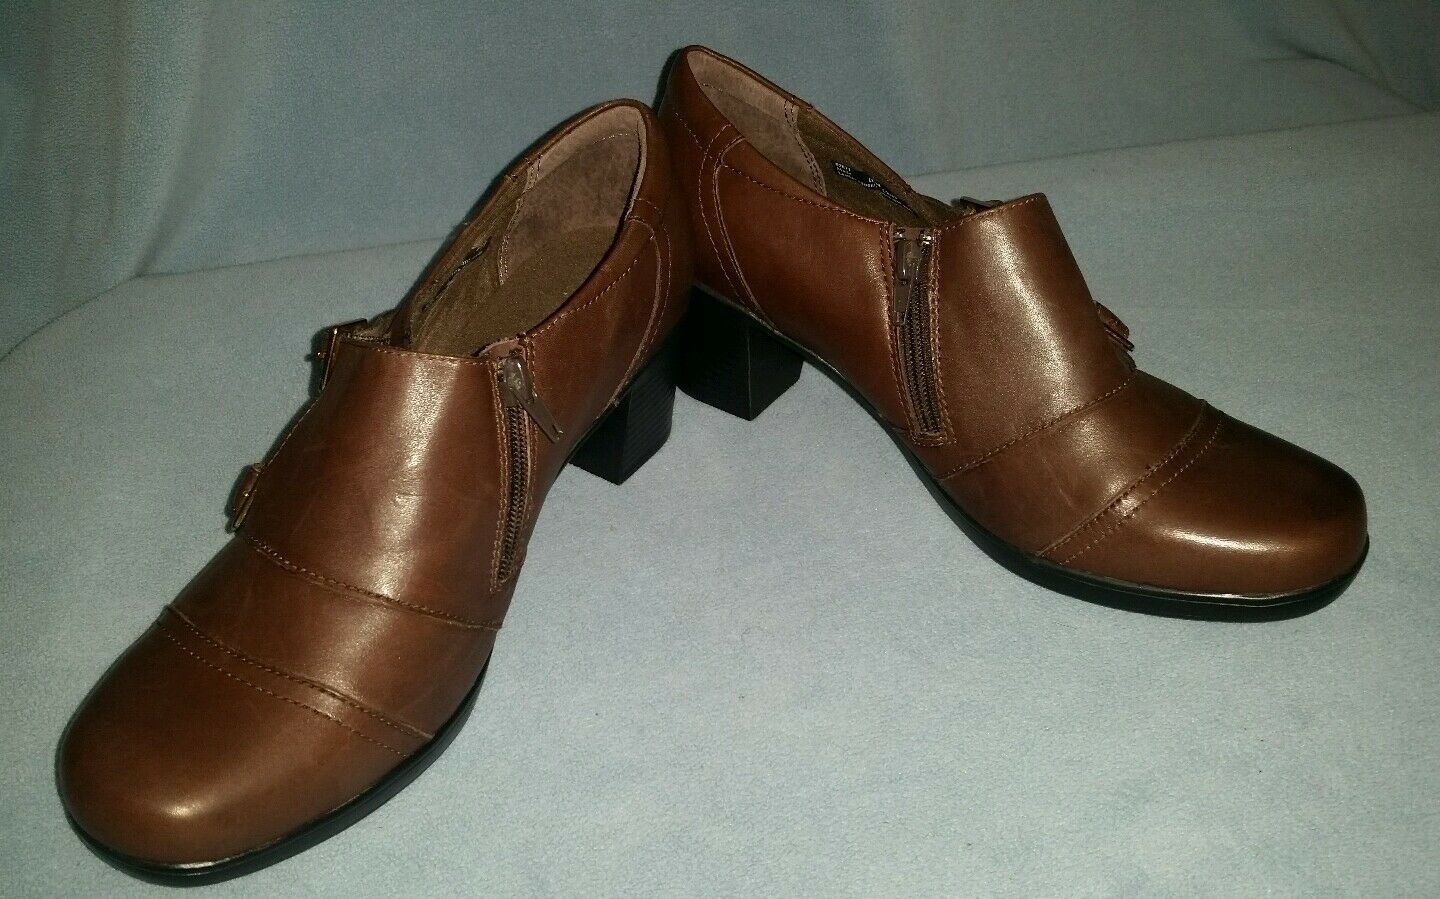 Clarks Bendables Brown Ankle Boot Bootie Shootie Size 10